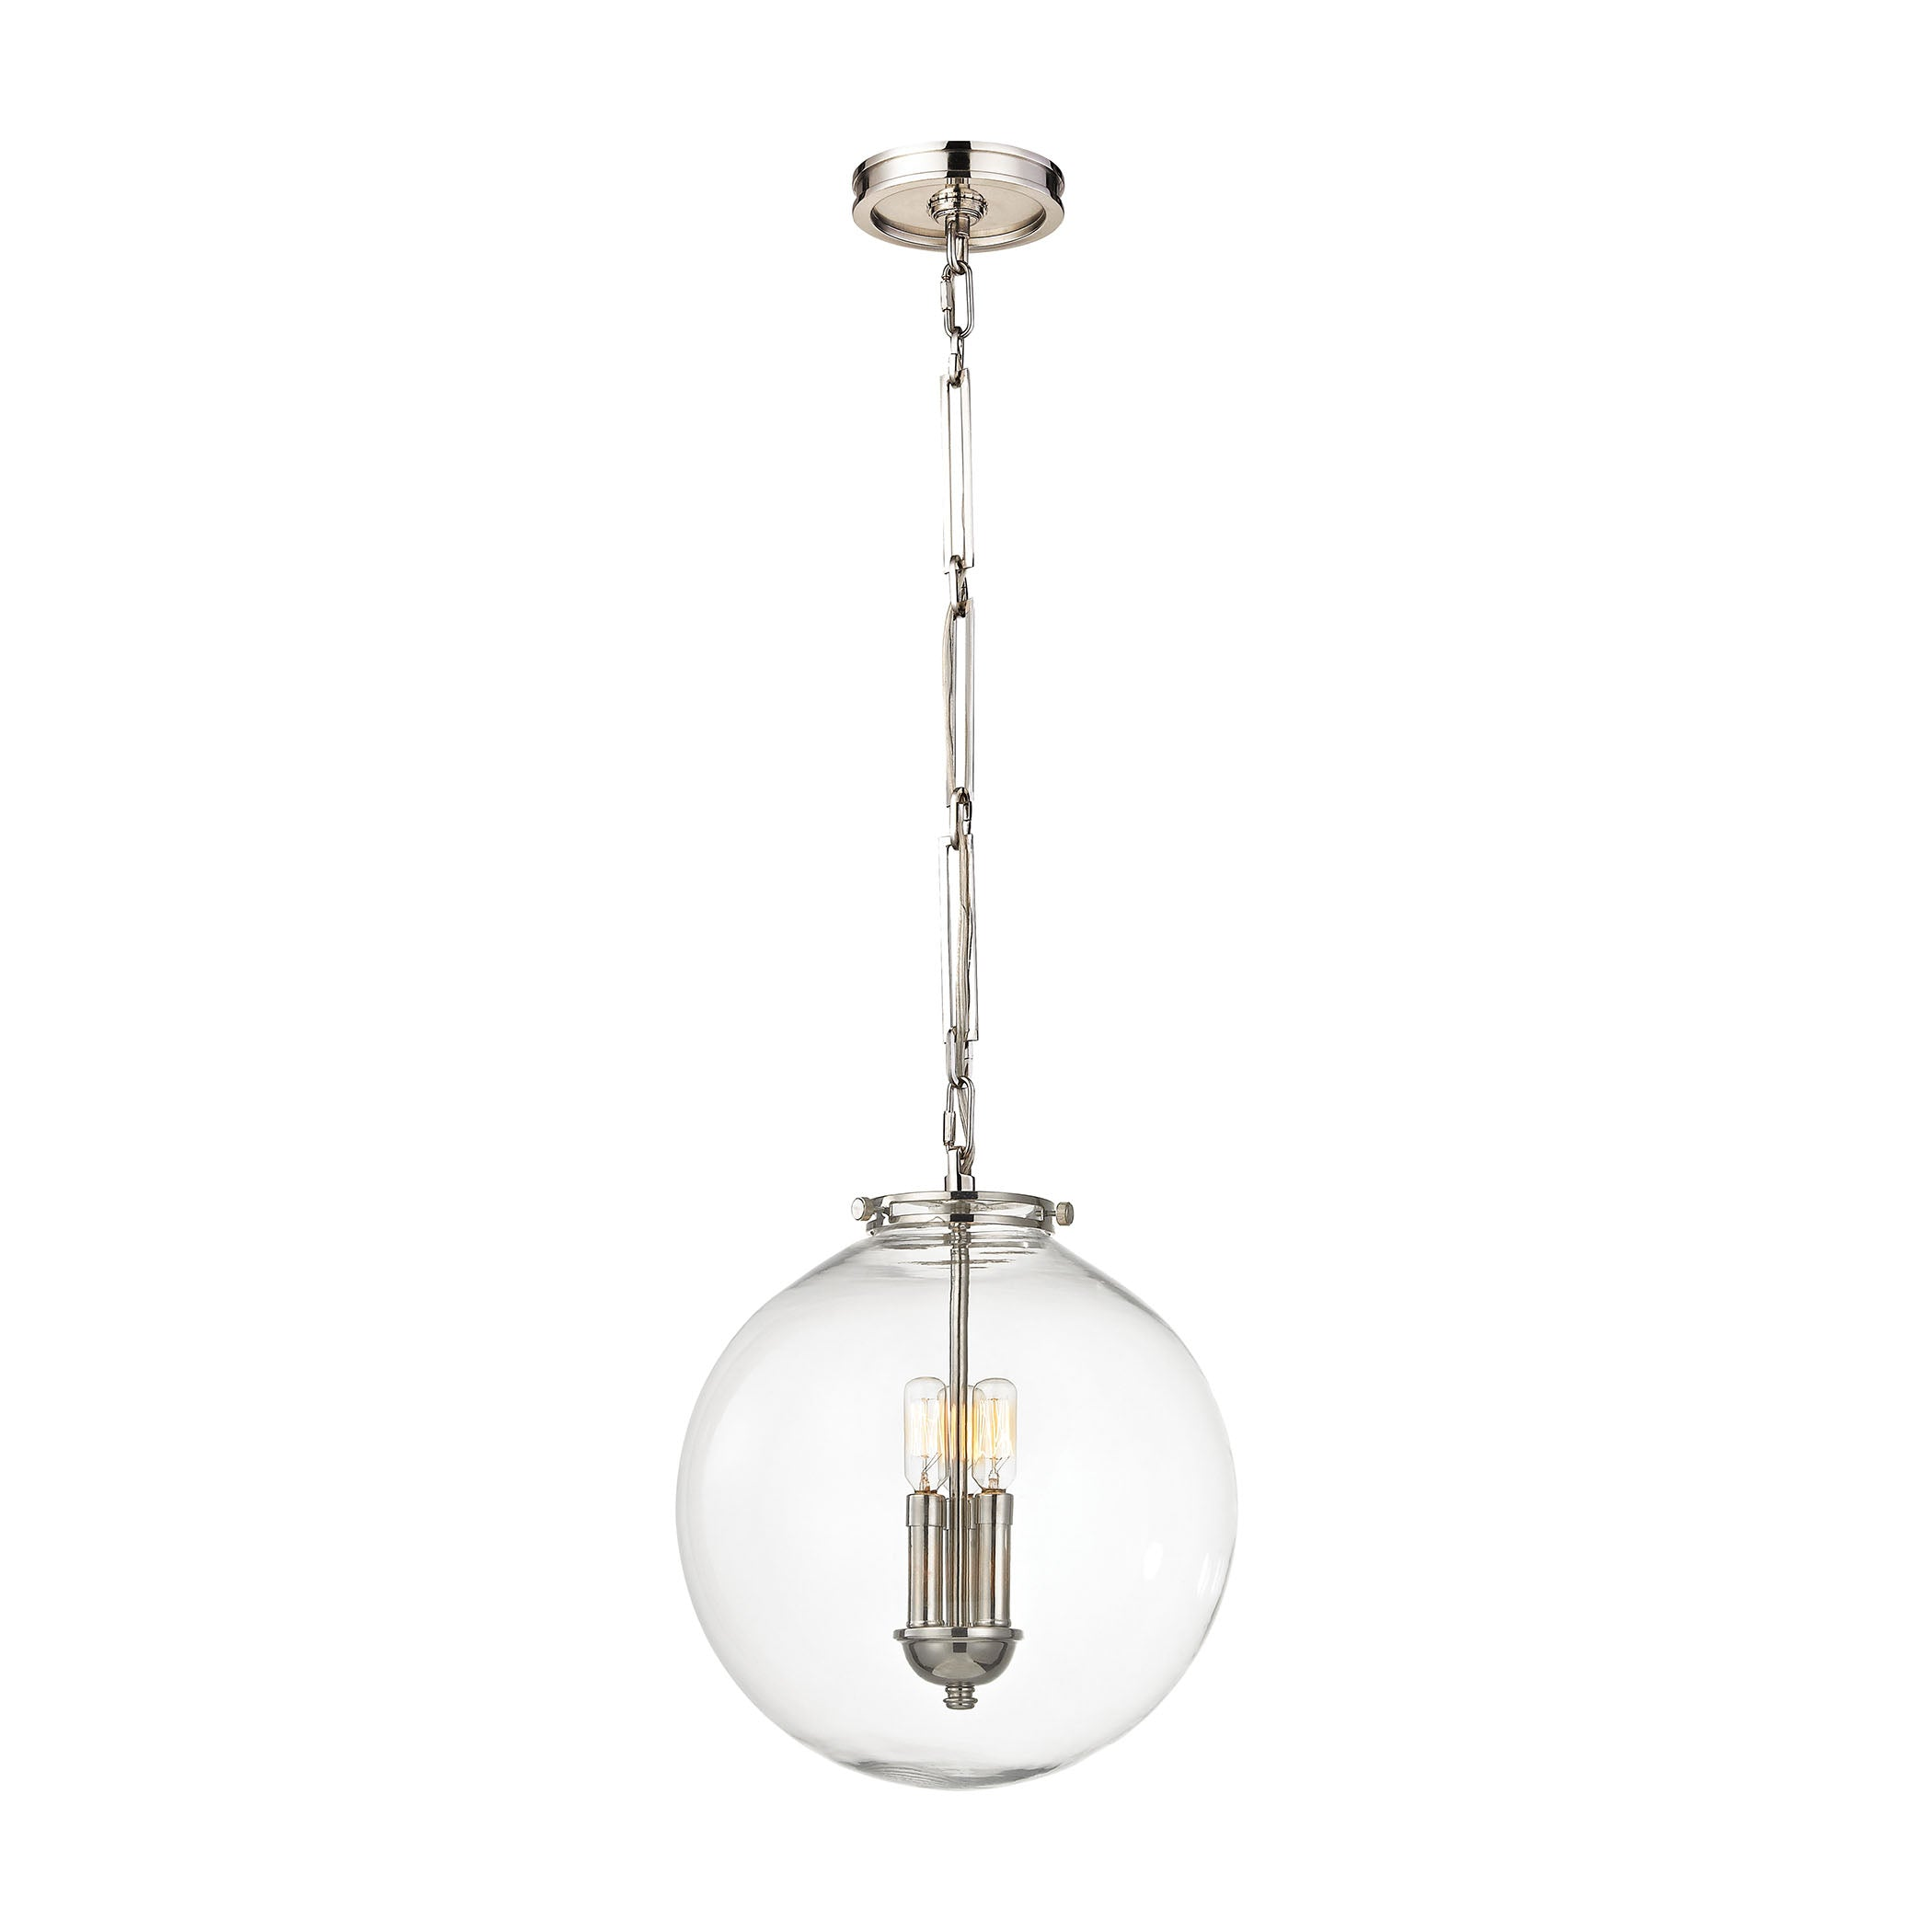 Gramercy Globe 3 Light Pendant in Polished Nickel by Elk Lighting 16391/3